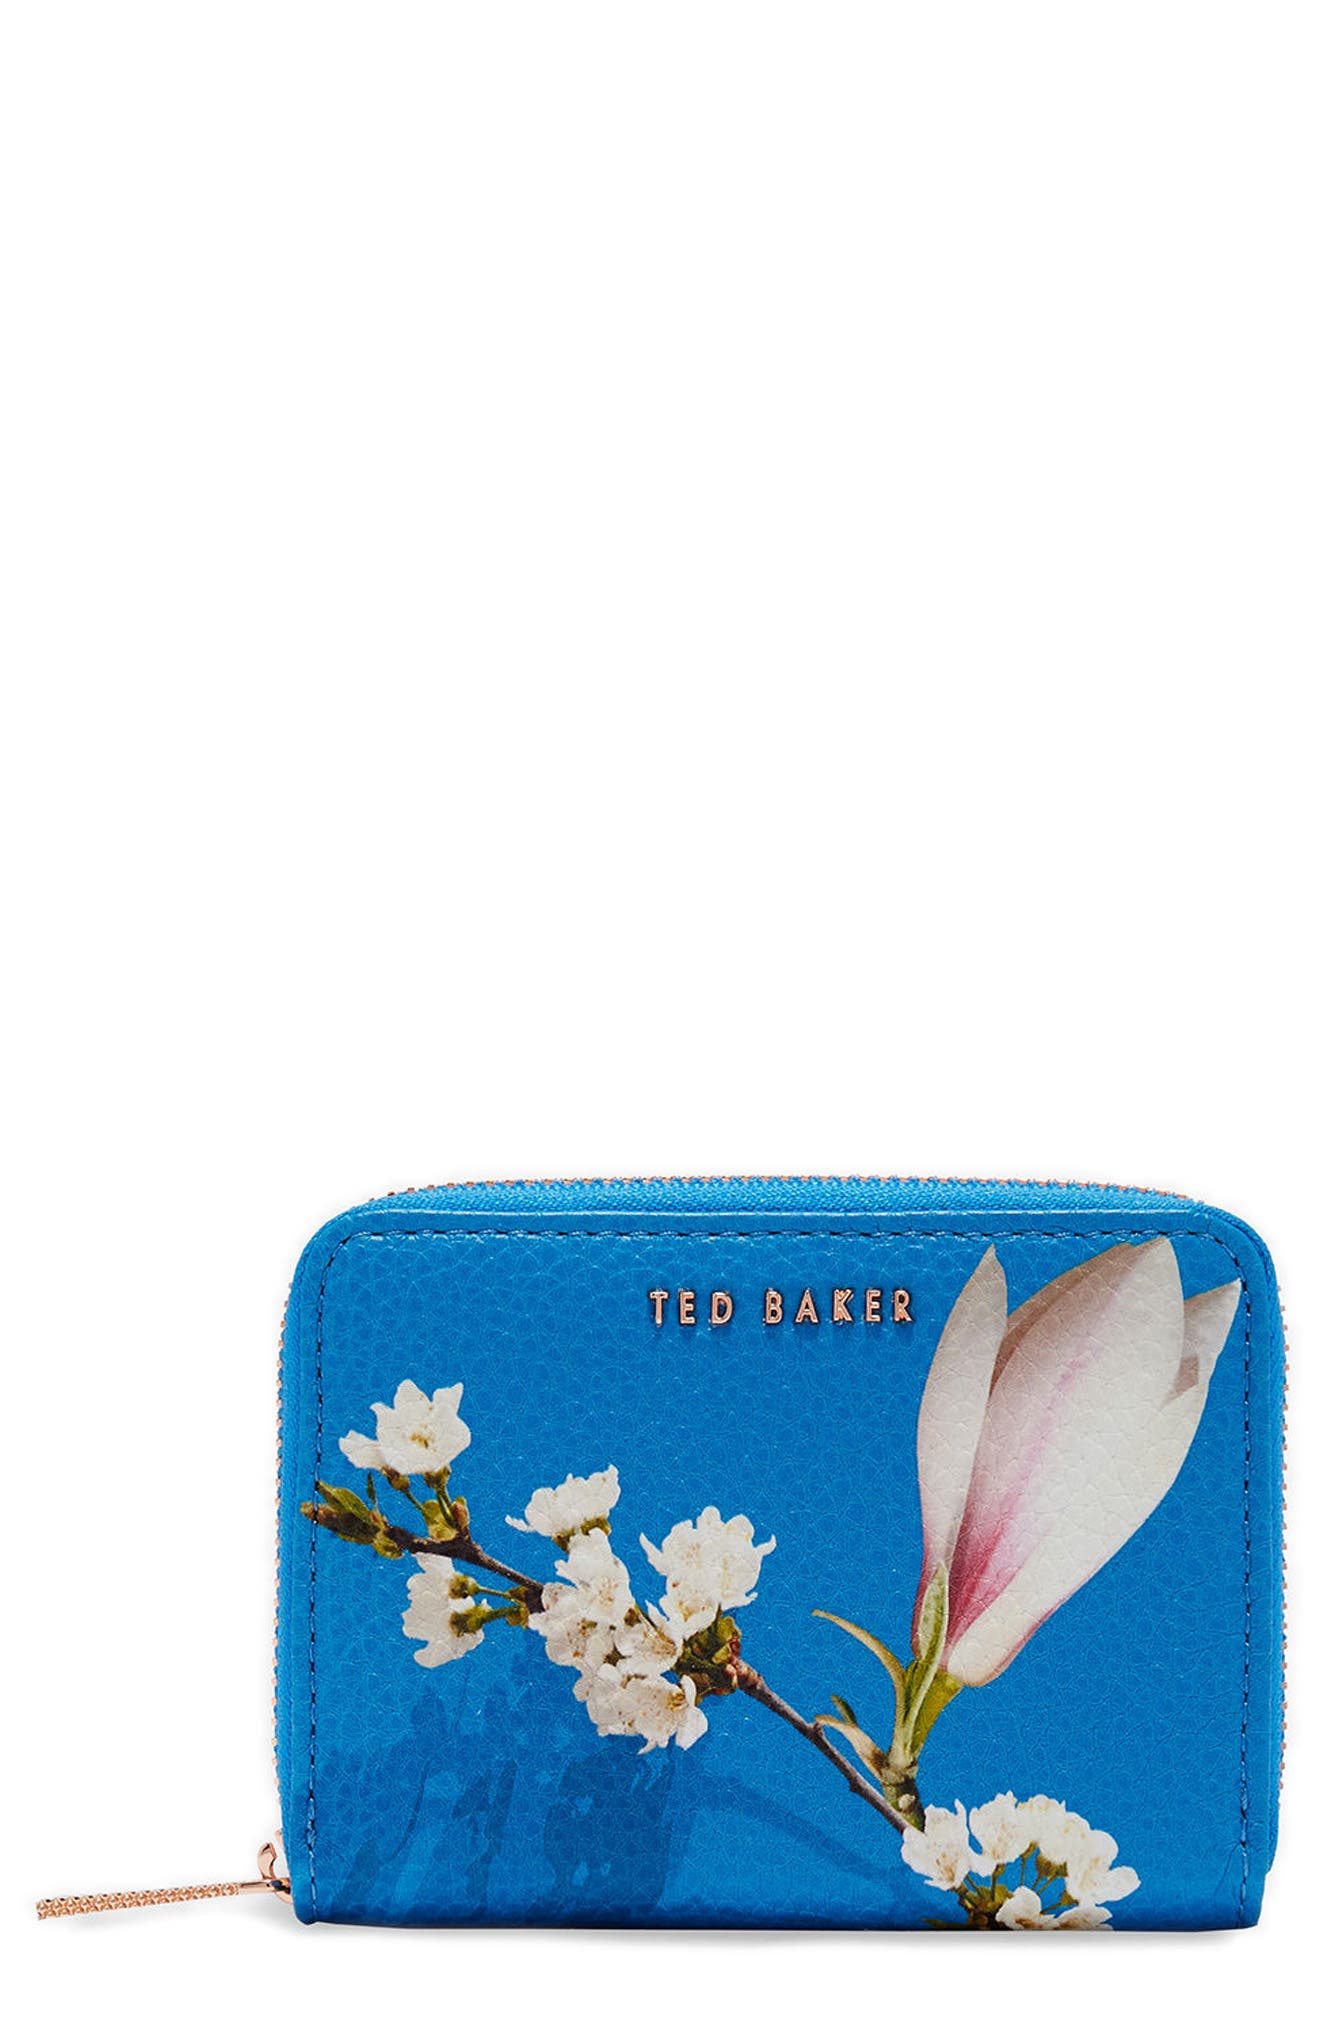 Corri Harmony Print Leather Zip Coin Purse,                         Main,                         color,